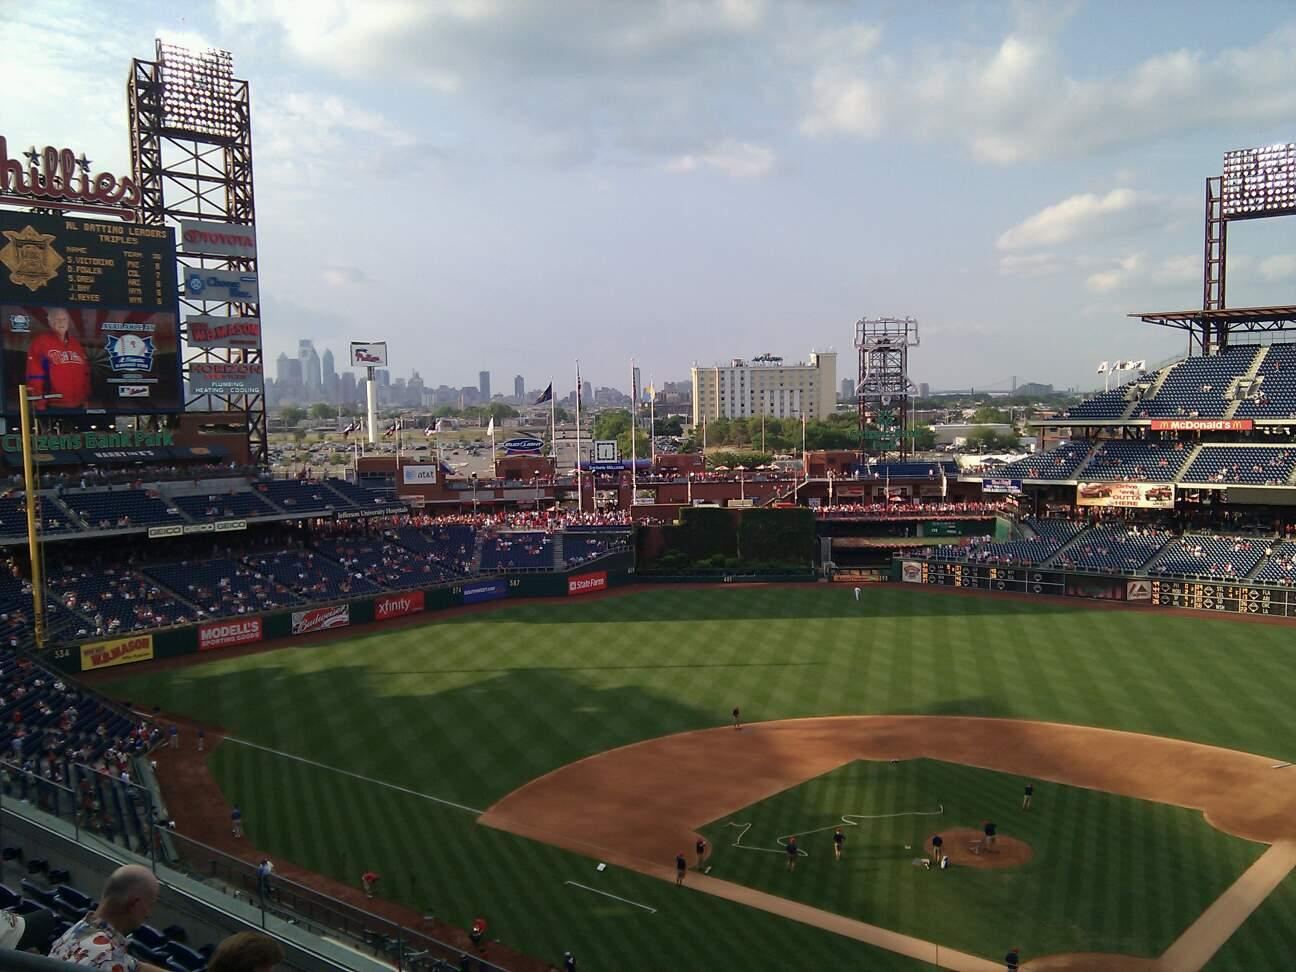 Citizens Bank Park Section 322 Row 6 Seat 19